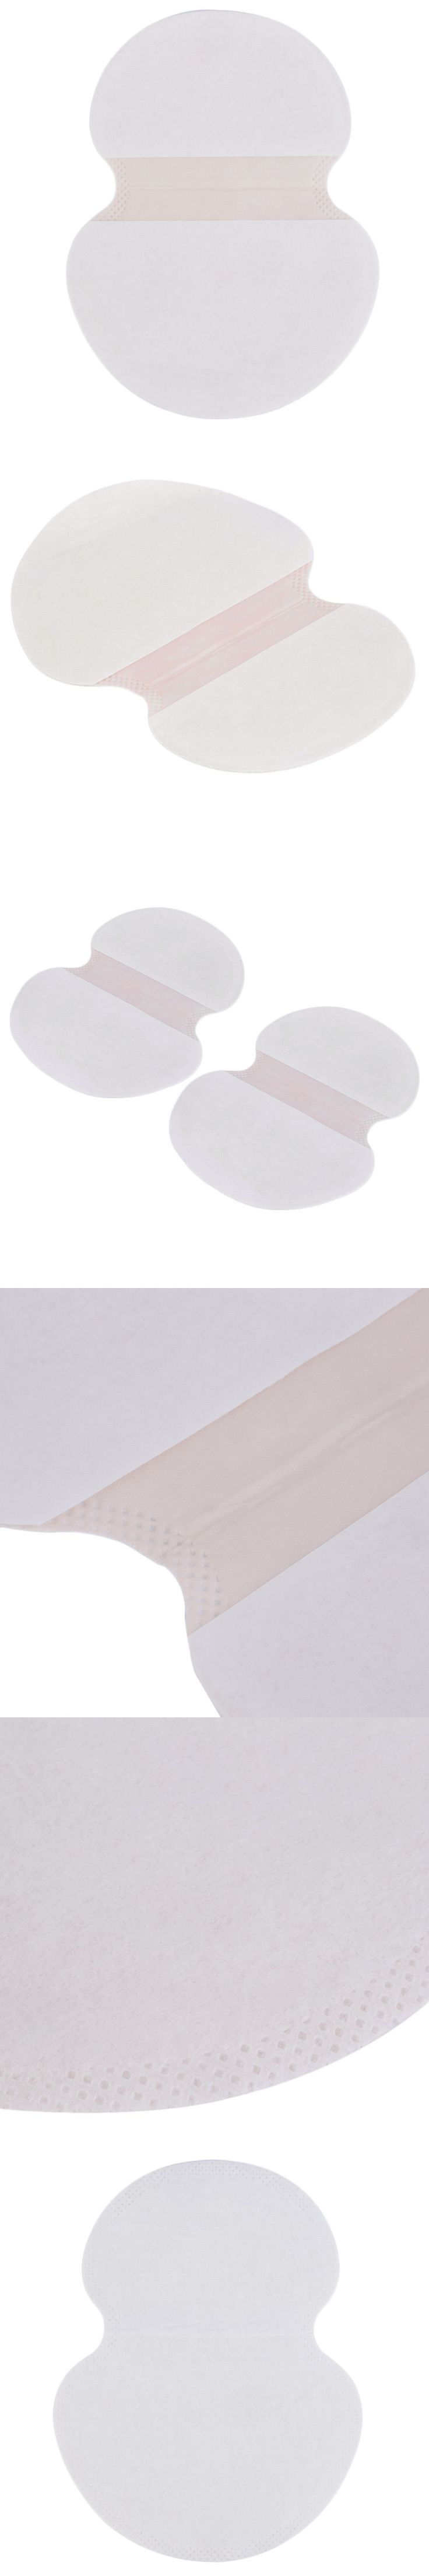 Underarm Armpit Sweat Pads Shield Absorbing Disposable Dress Clothing Shield Absorbing Deodorant Antiperspirant Health Care hot